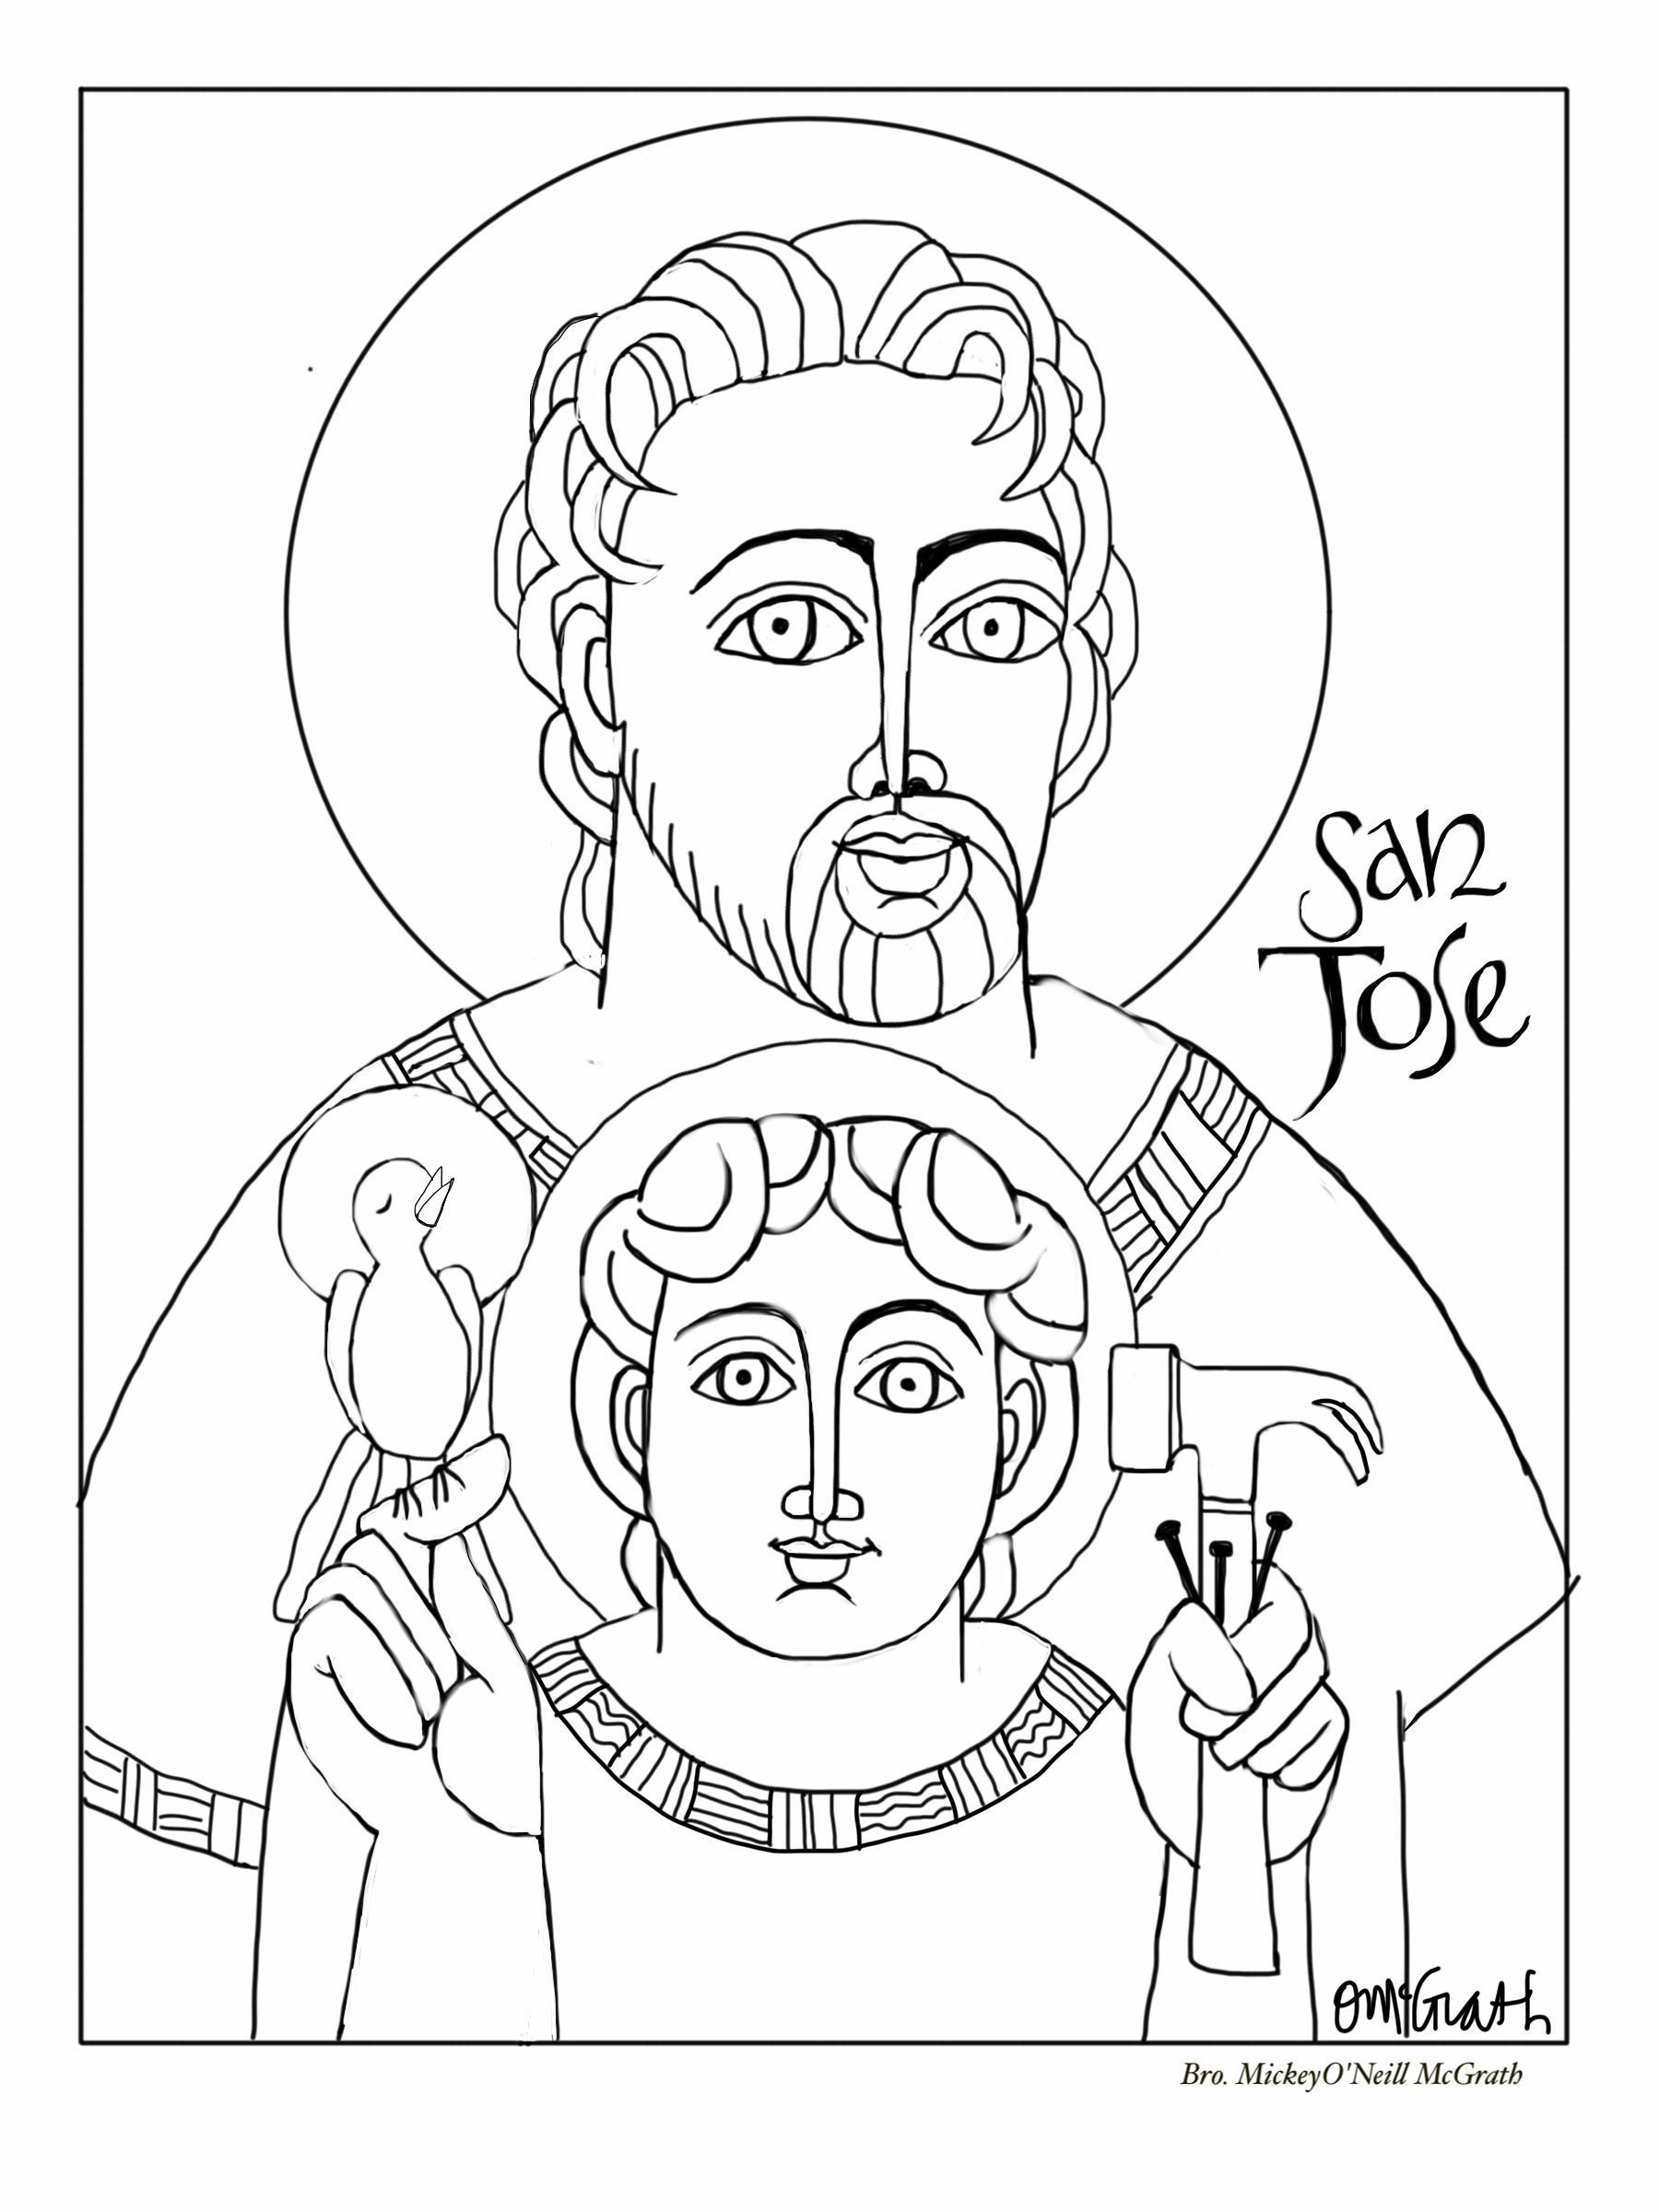 We Are Working Together At Creating A More Loving Peaceful World And Church Click On The Images Below To Download Each Coloring Page